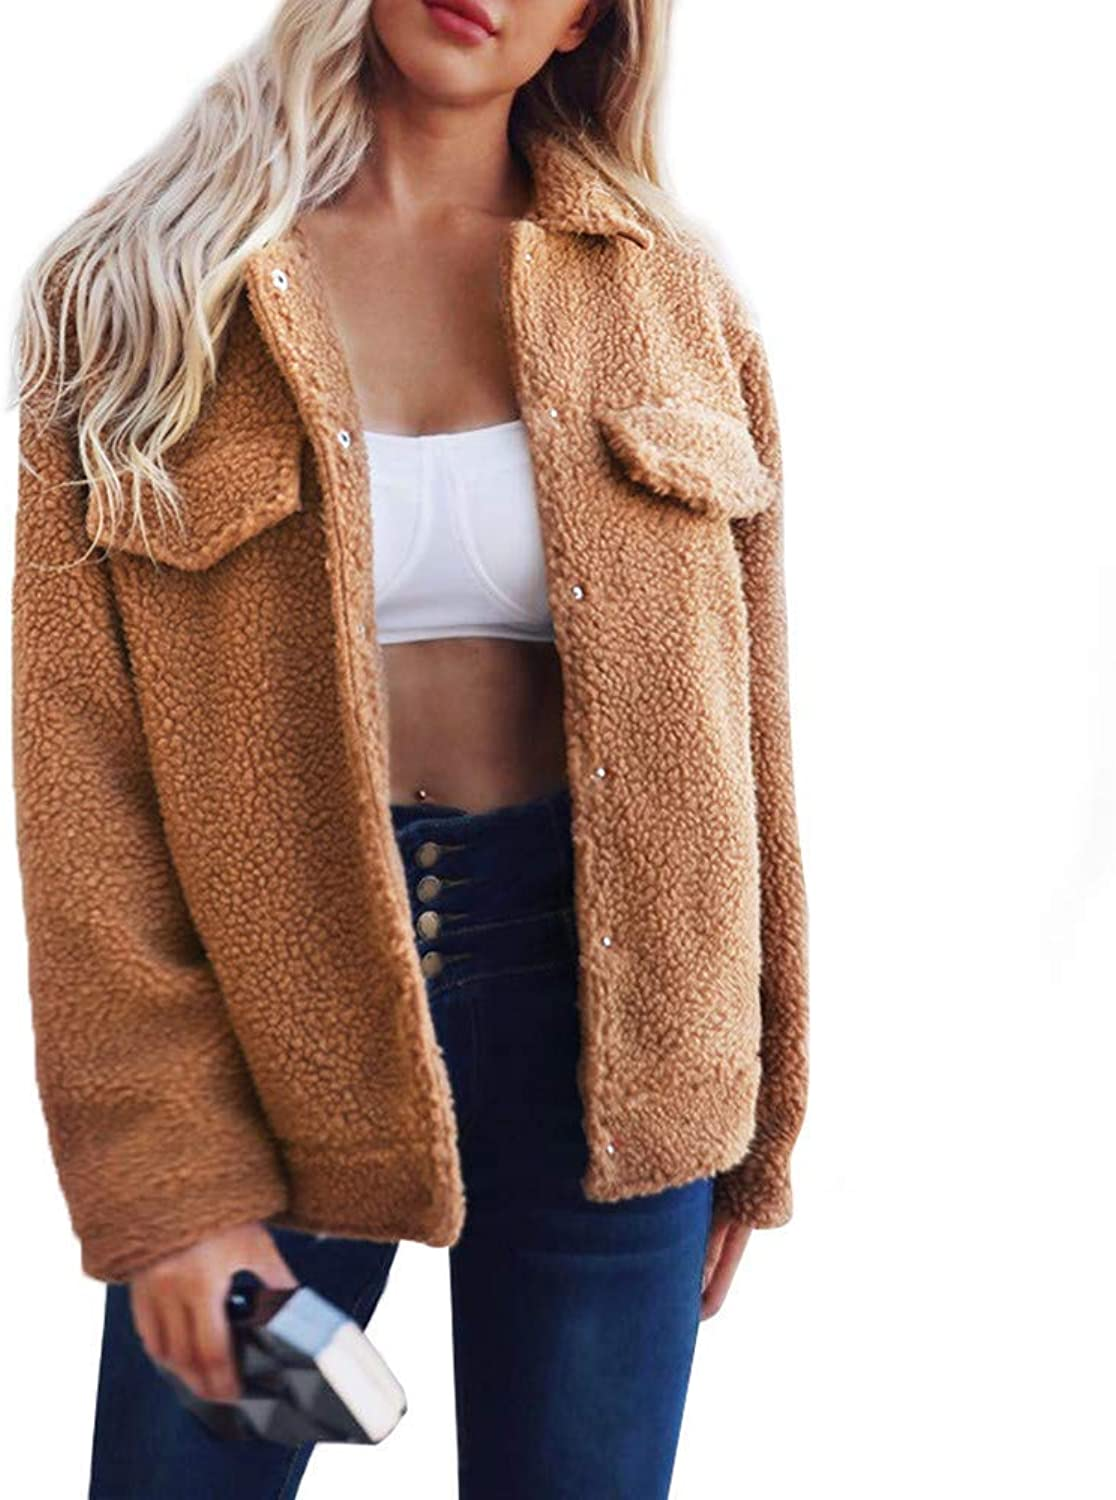 Womens Ladies Cardigan Coat Button Pockets Solid Jacket Winter Parka Outerwear Fashion Cosy Wild Tight Super Quality for Womens (color   brown, Size   XXL)